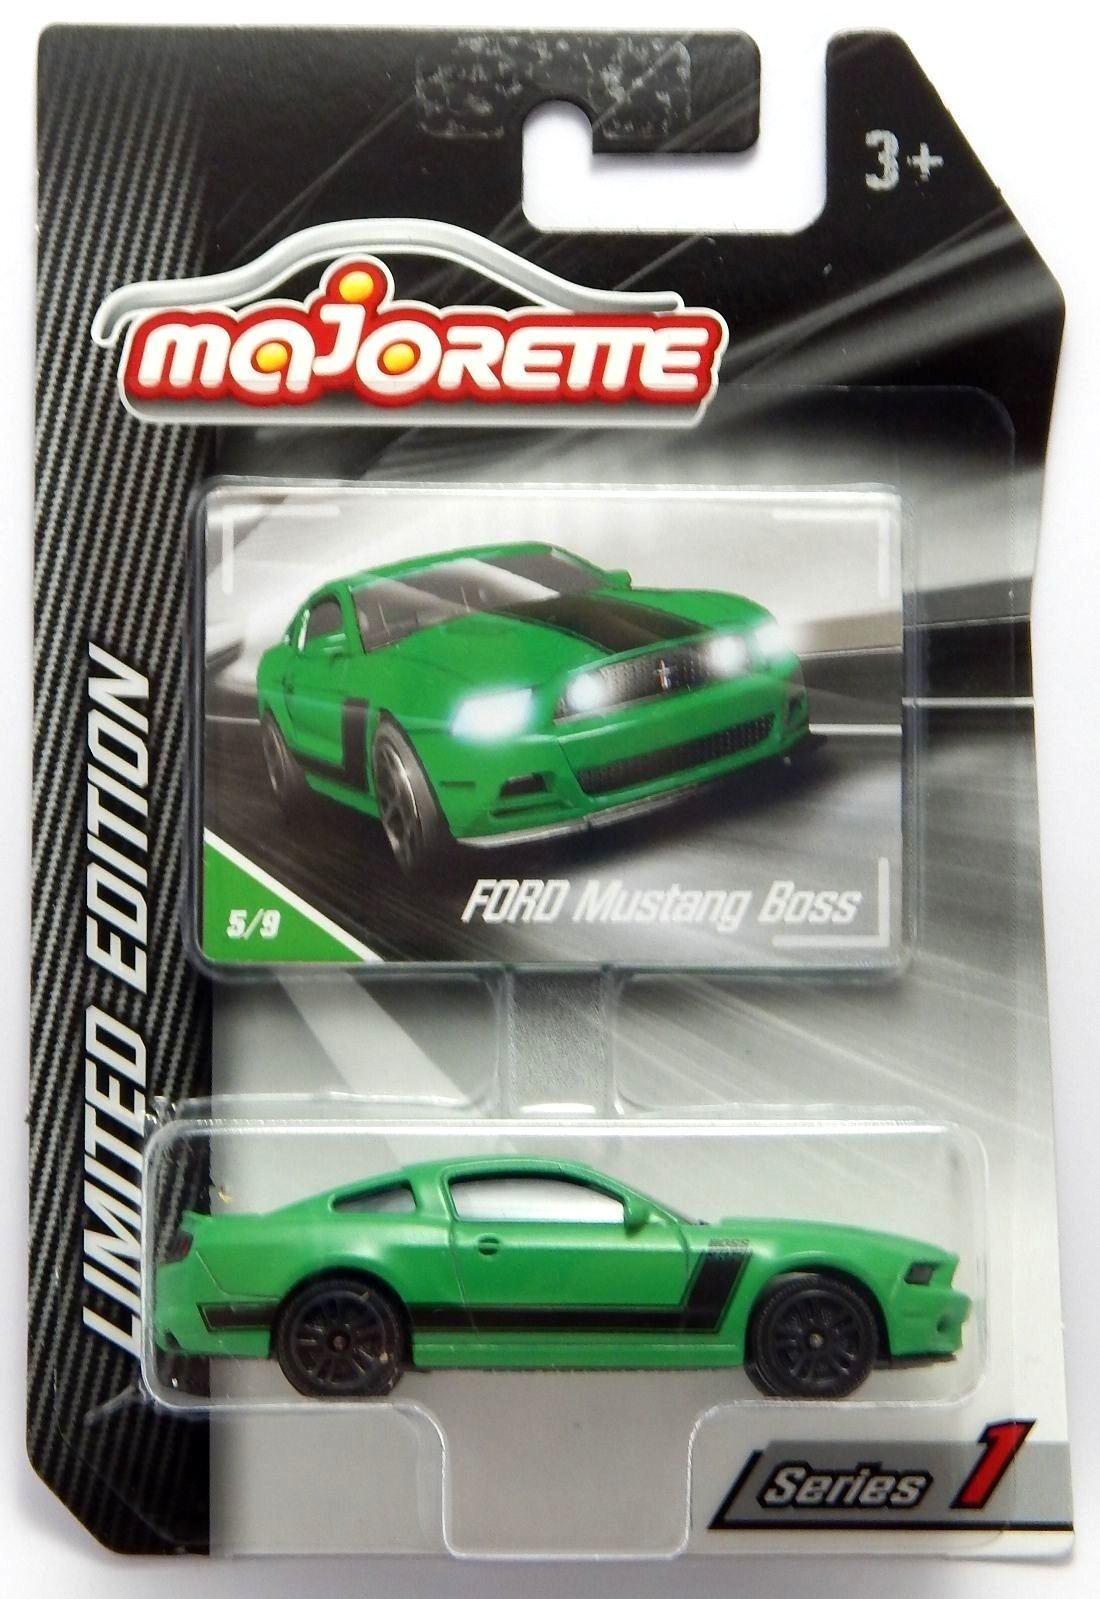 Majorette Ford Mustang Boss Series 1 Limited Edition